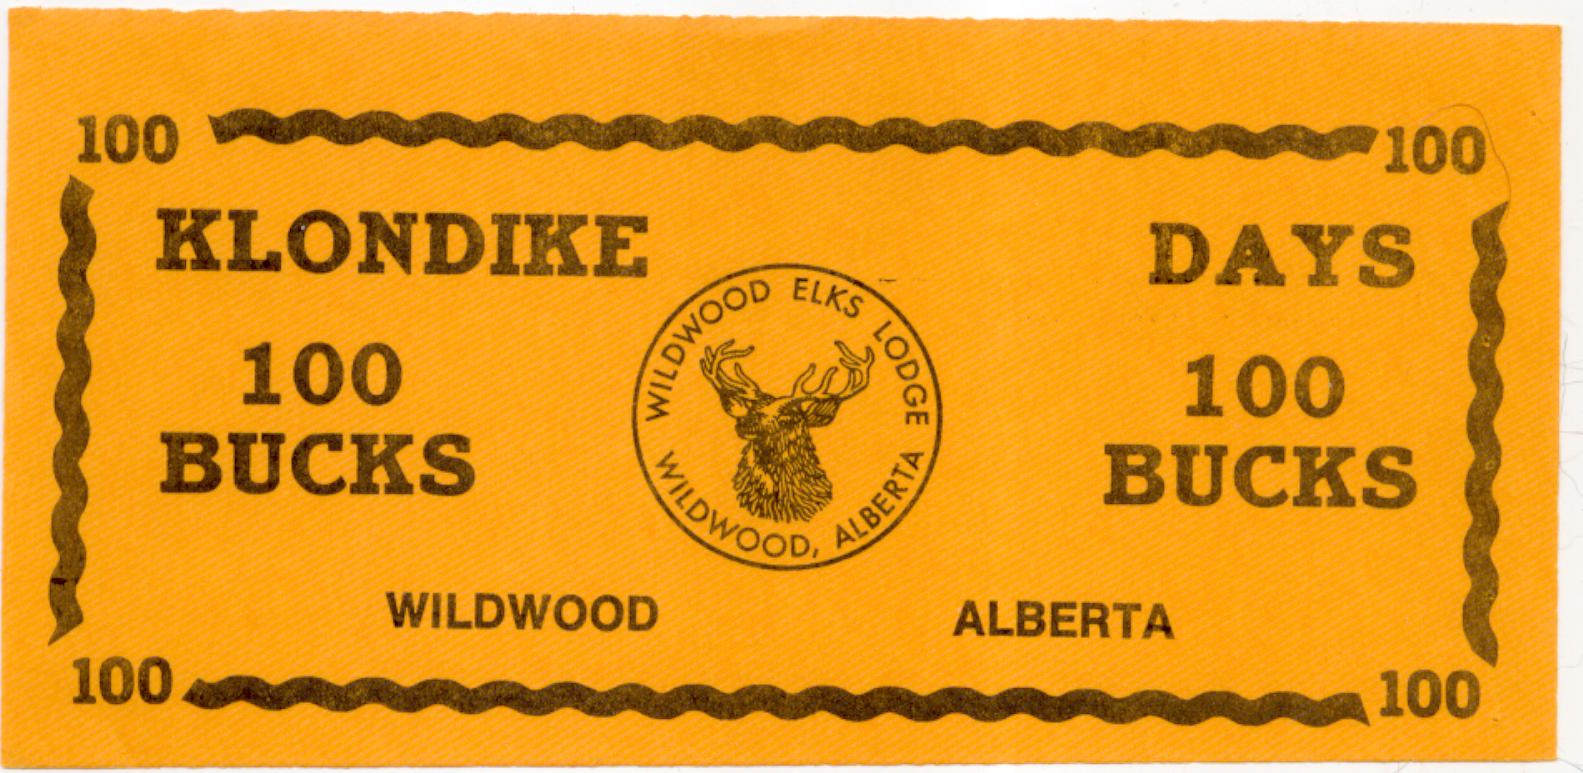 Wildwood Alberta 100 Bucks undated Klondike Note